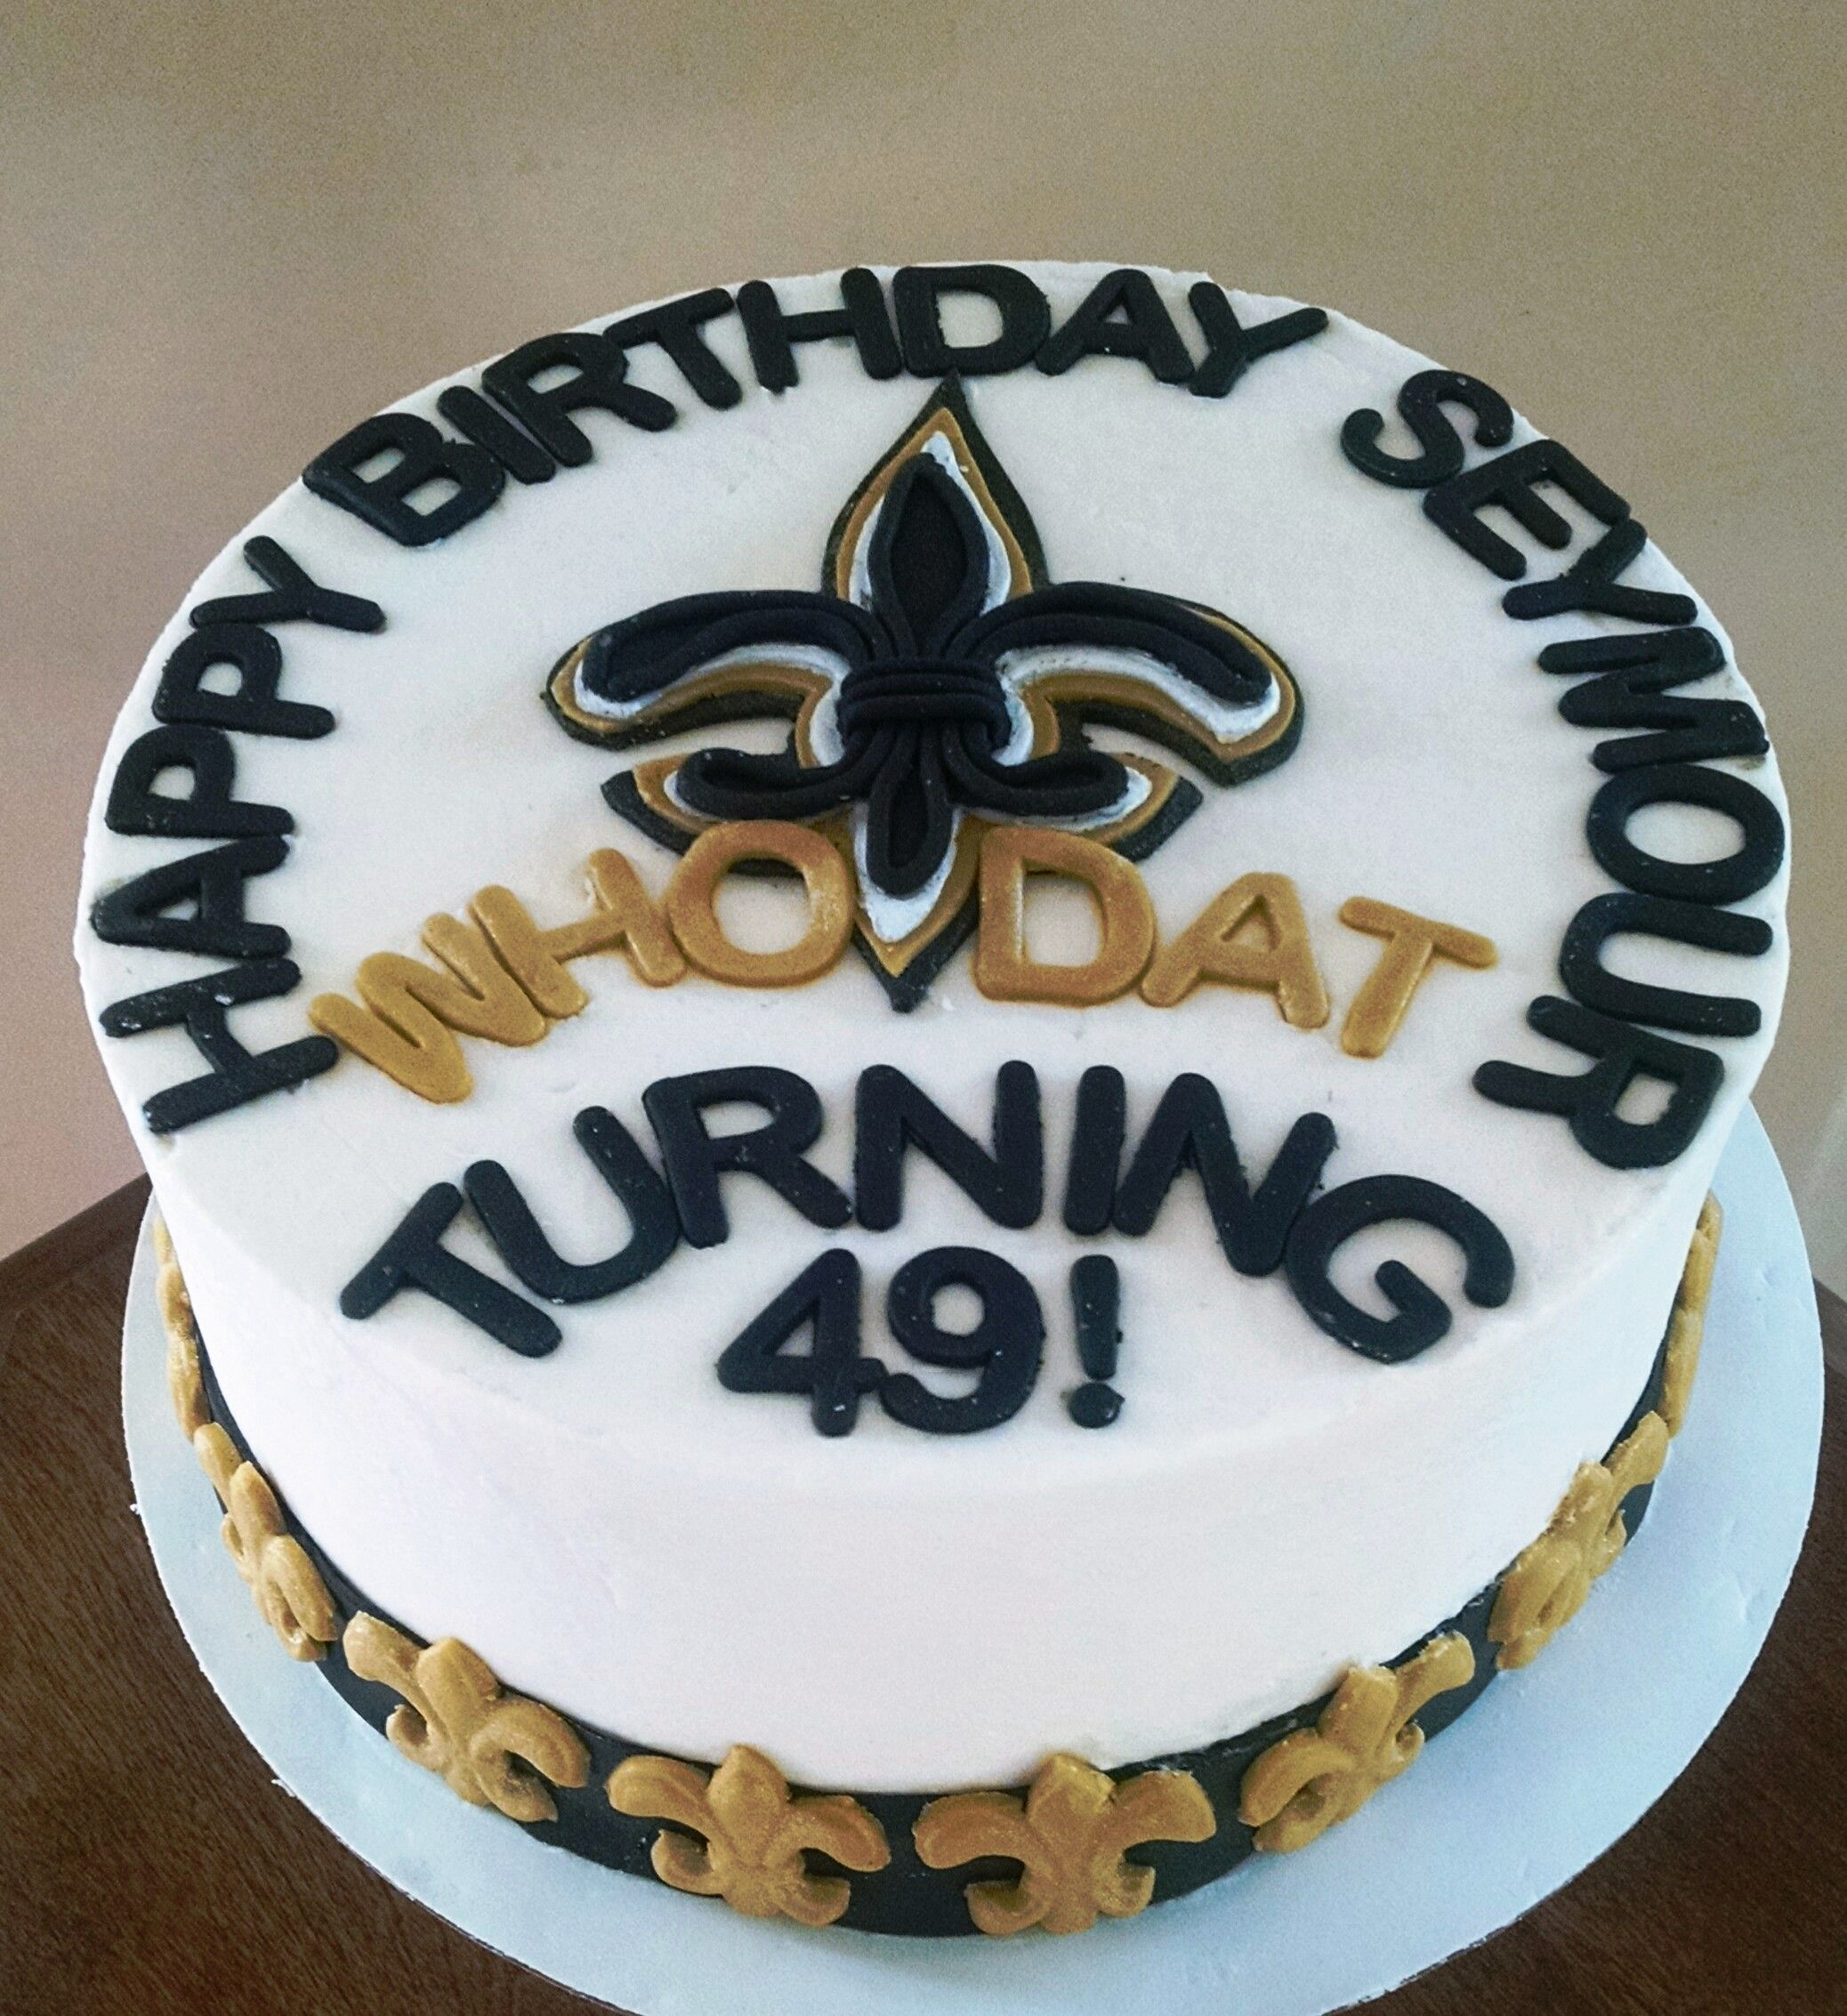 New Orleans Saints Birthday Cake With Fleur De Lis Border